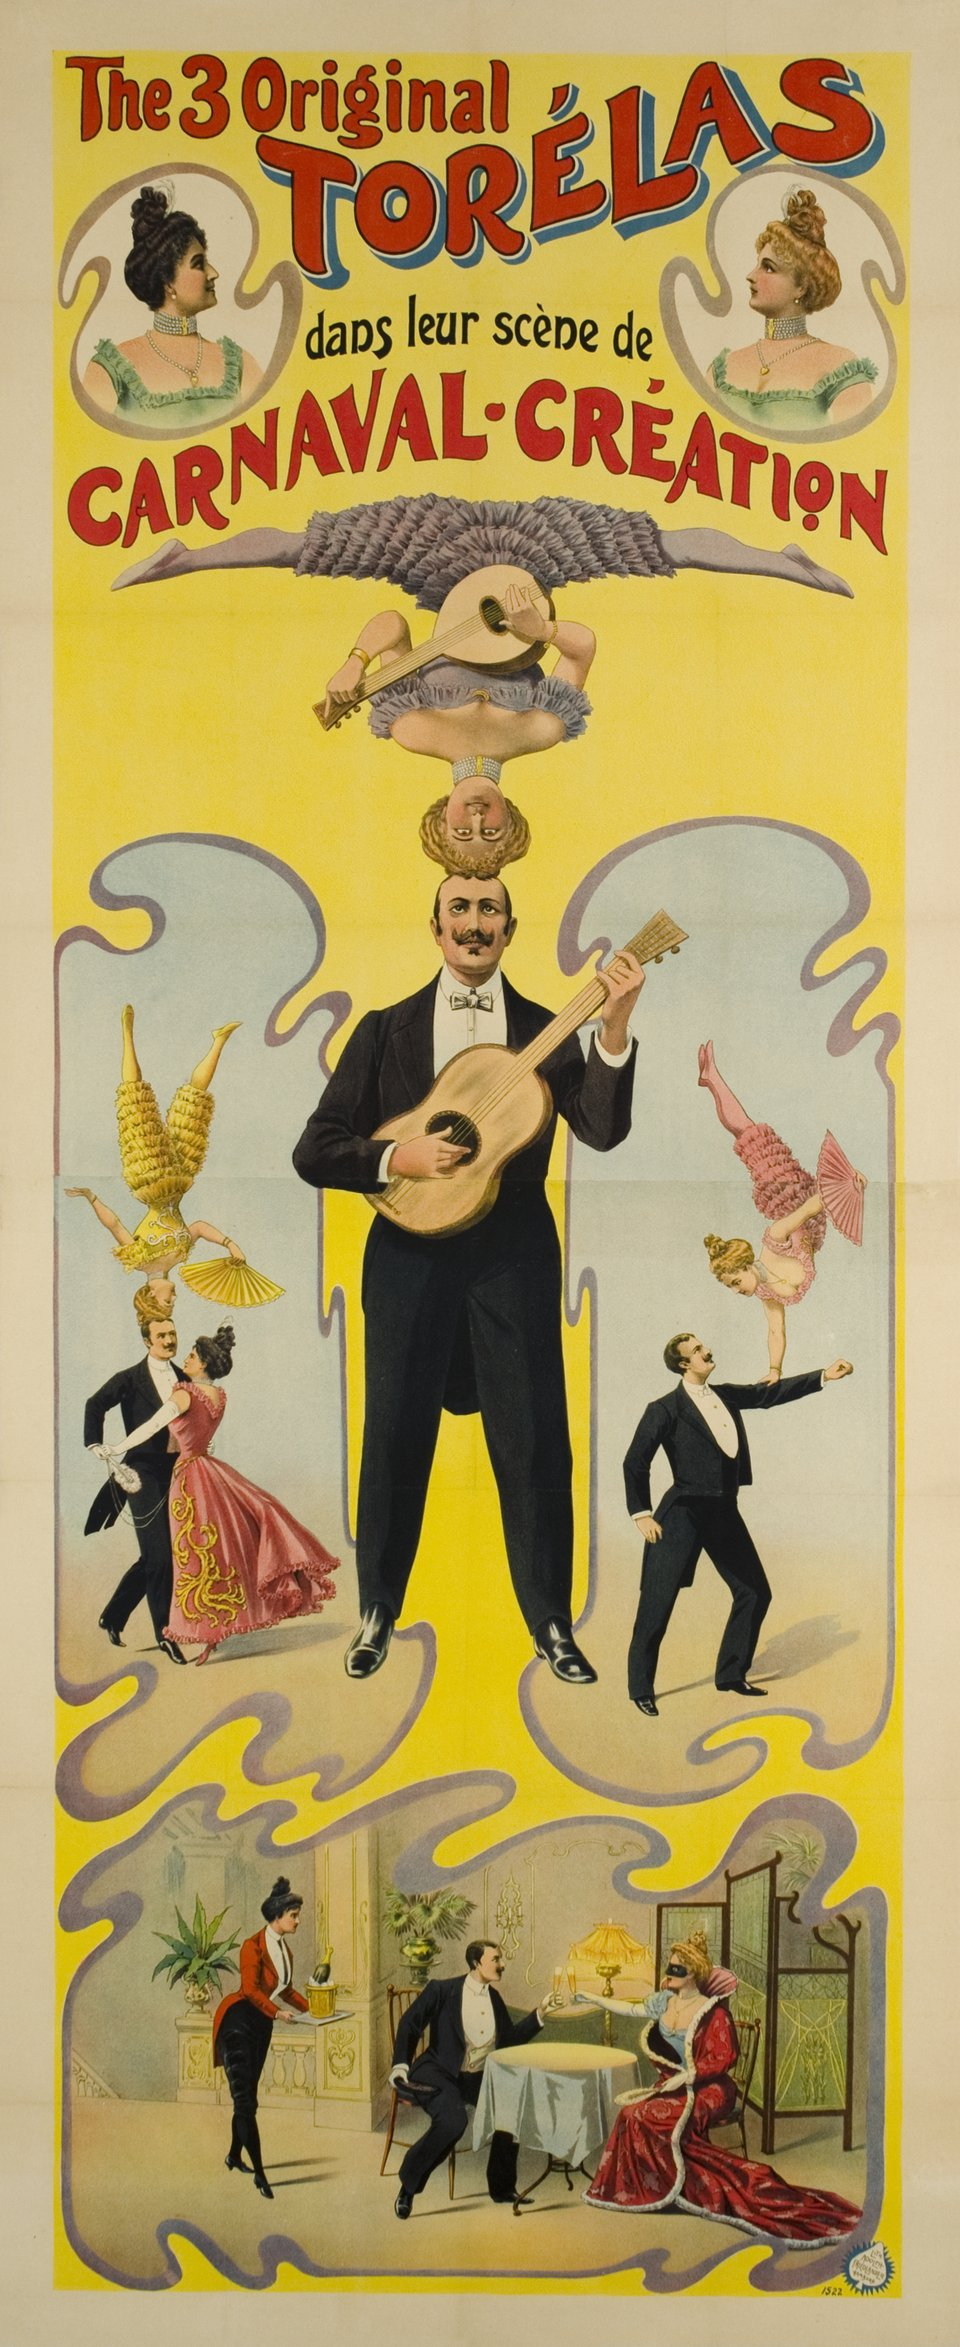 The 3 original Torélas, carnaval création – Affiche ancienne – ANONYME – 1900